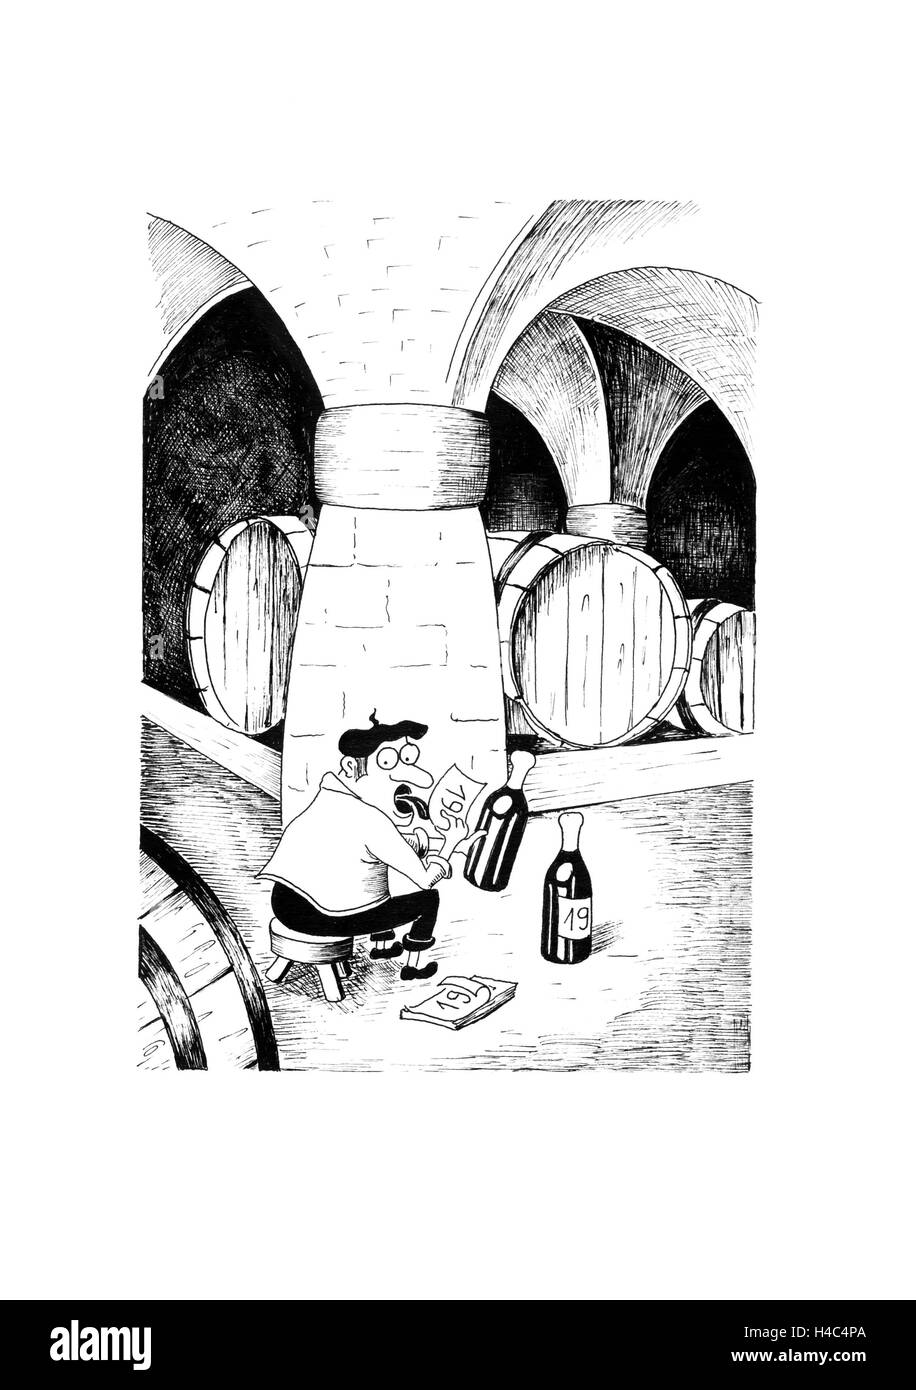 Wine waiter in the vaulted cellar labelling wine bottles - Stock Image